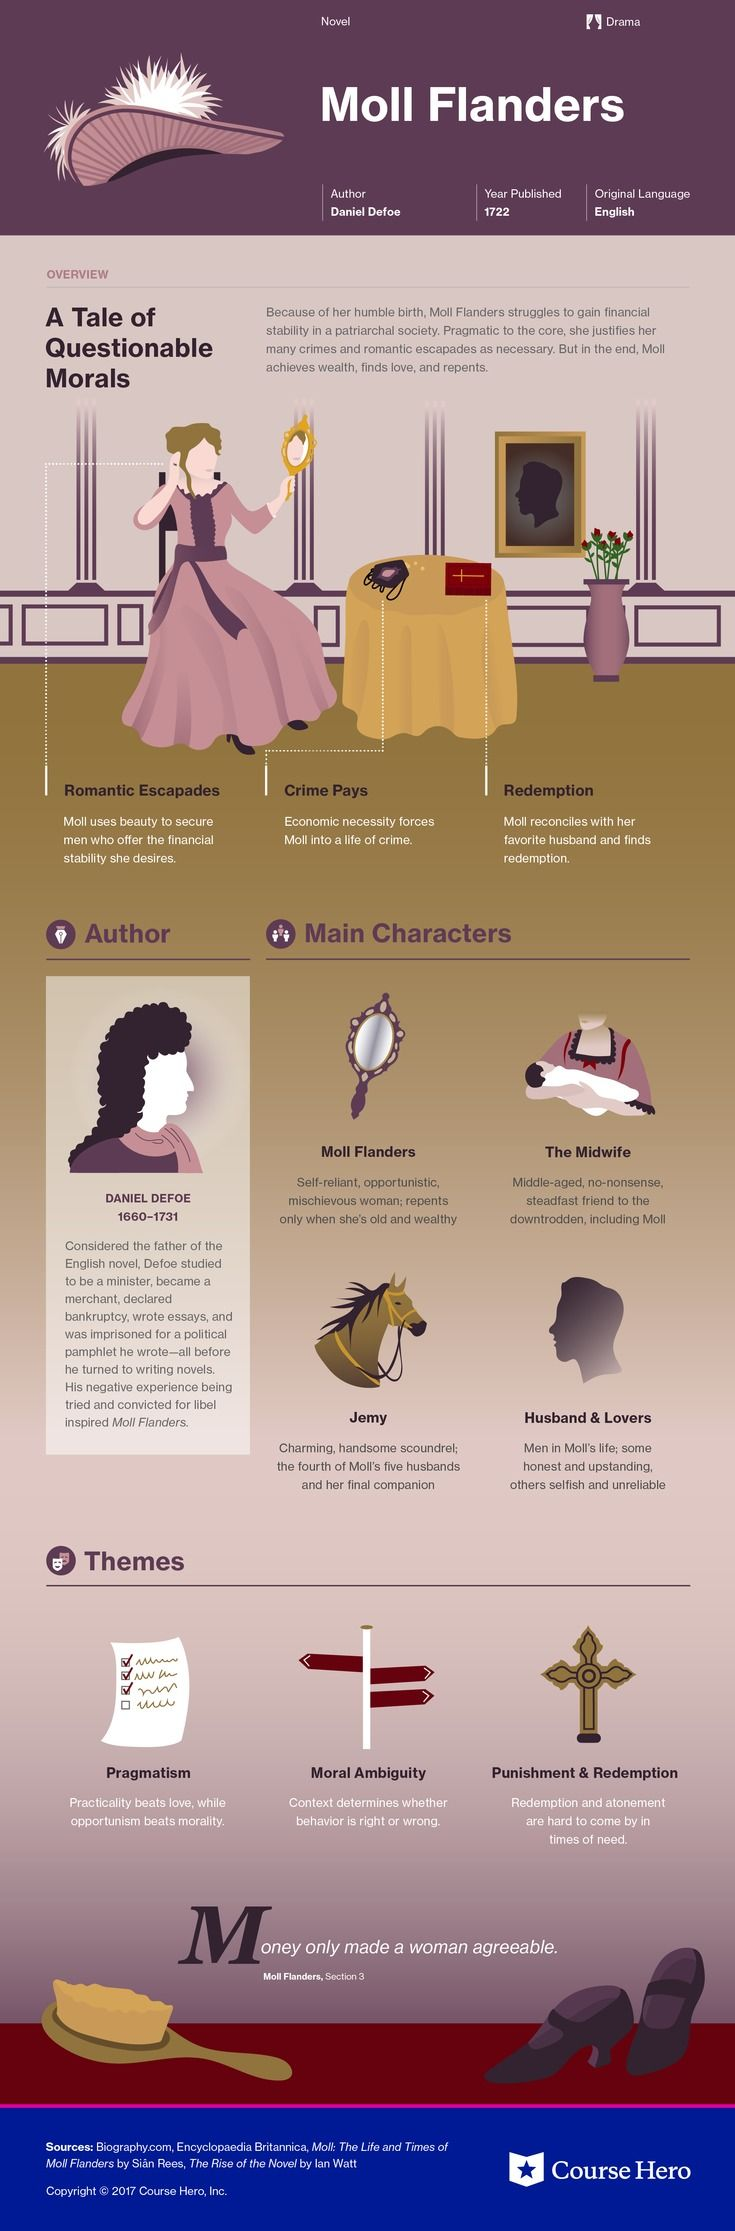 This @CourseHero infographic on Moll Flanders is both visually stunning and informative!